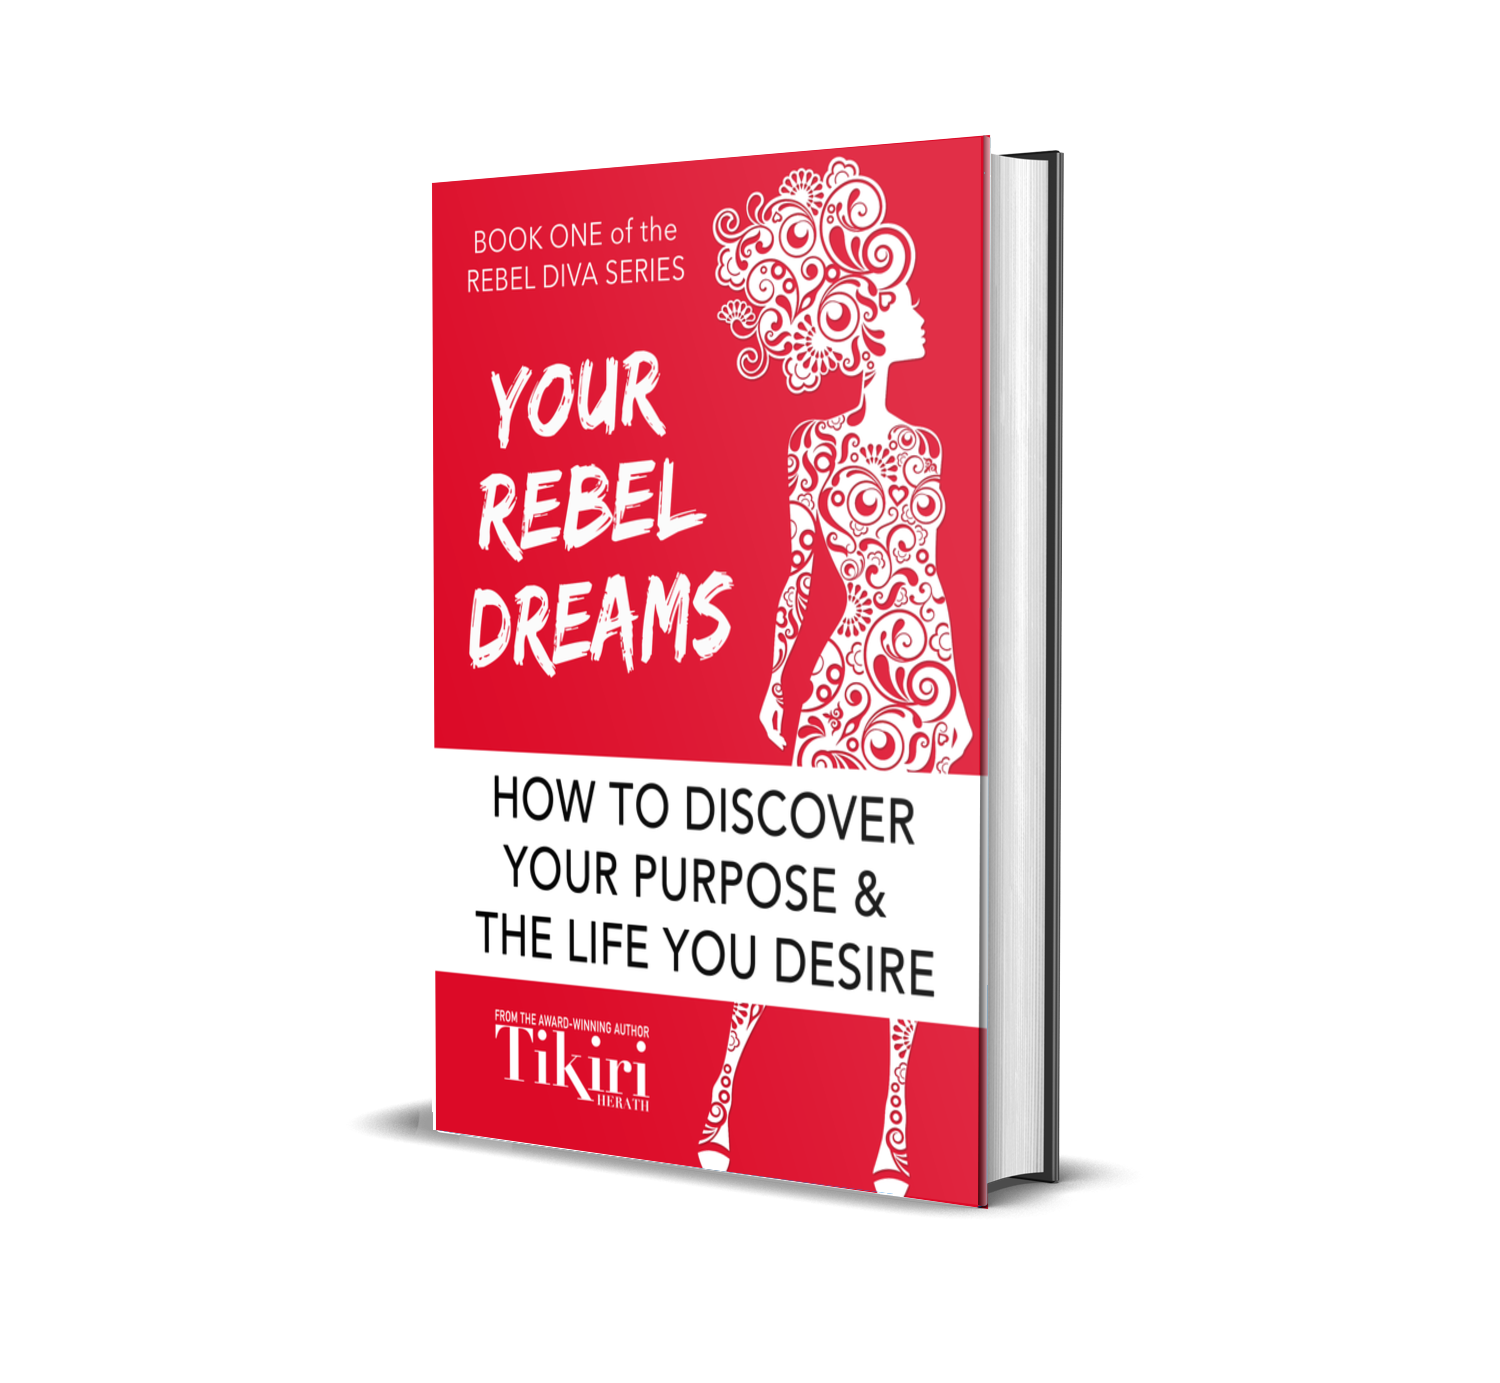 Book One of the Rebel Diva Empowerment Series, Your Rebel Dreams by Tikiri Herath